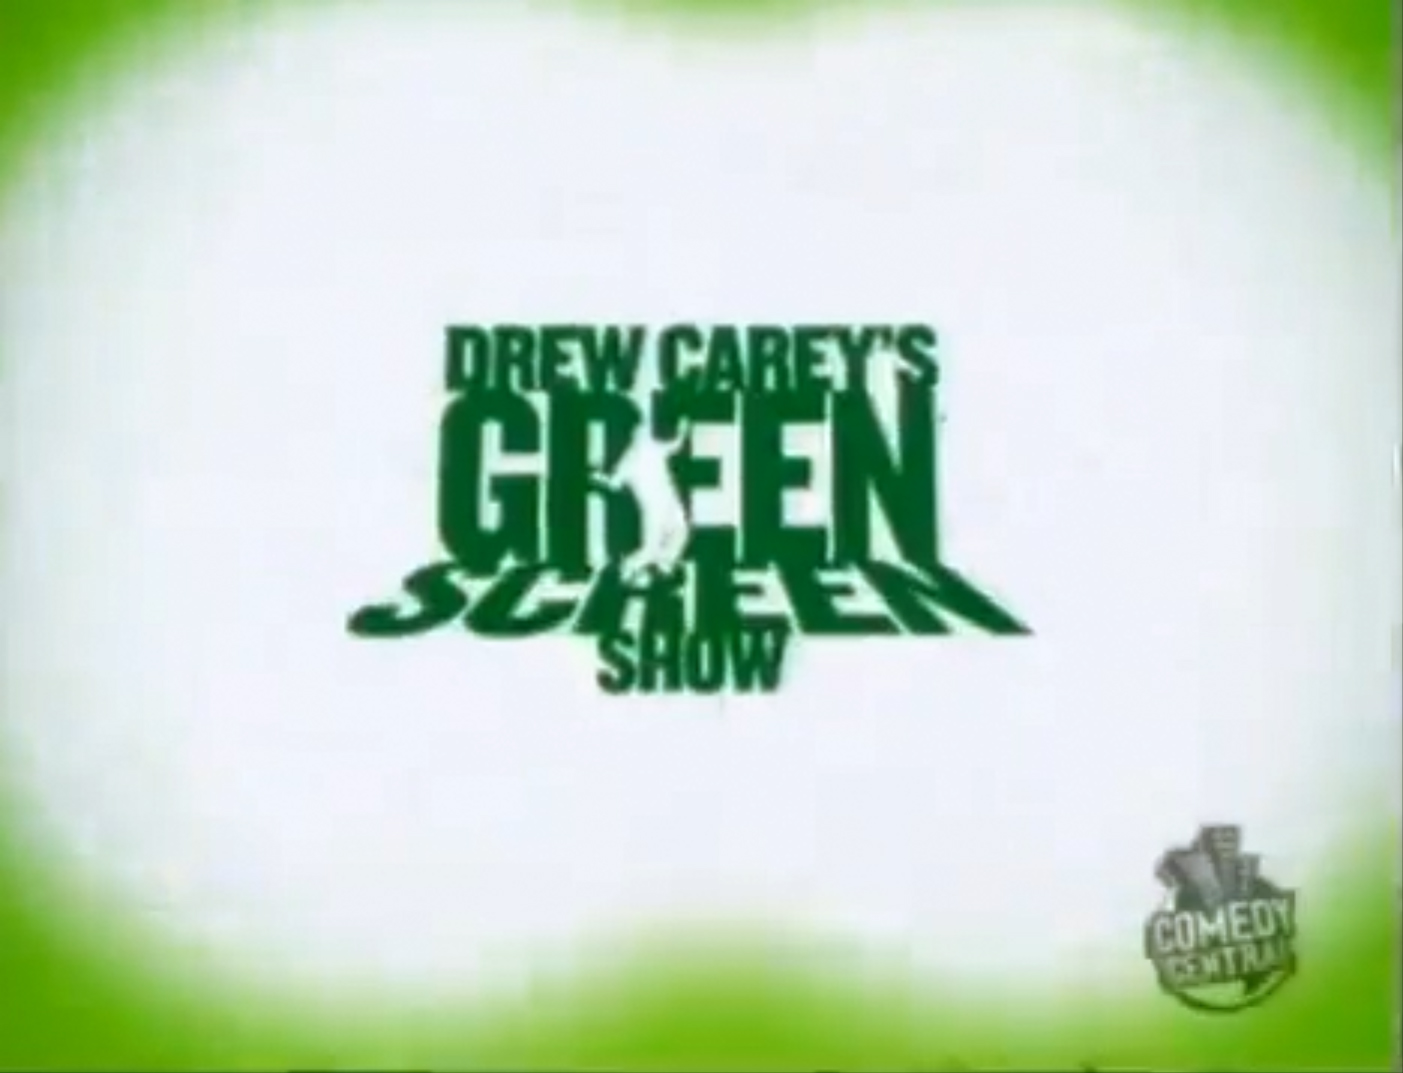 Drew Carey's Green Screen Show | Whose Line Is It Anyway